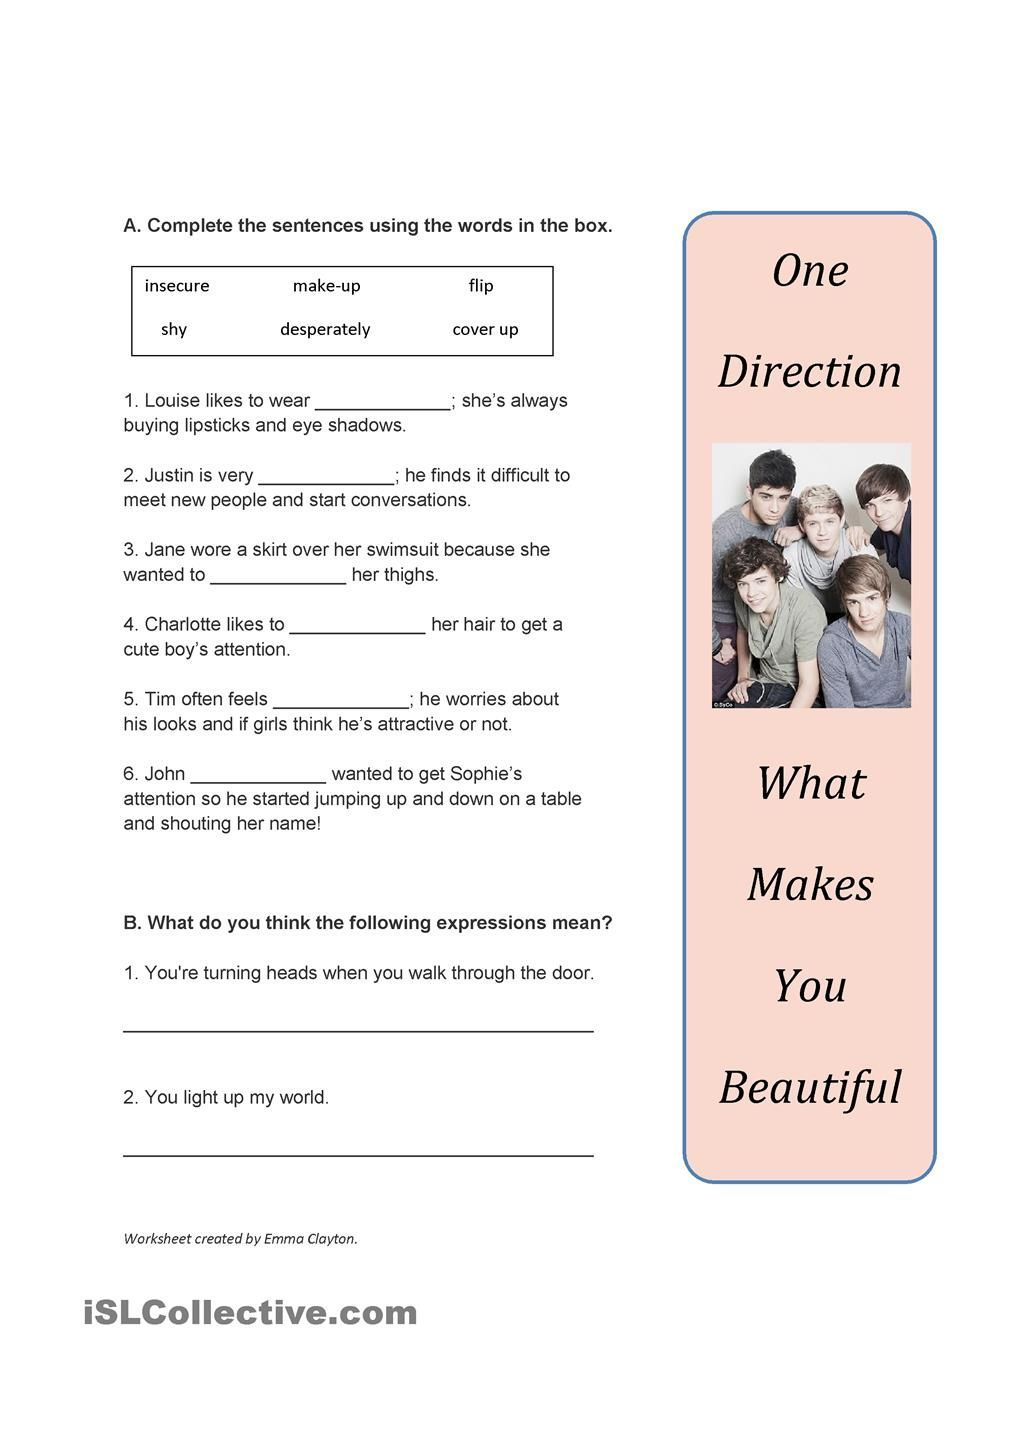 B1 adjectives and adverbs song worksheet what makes you beautiful by one direction